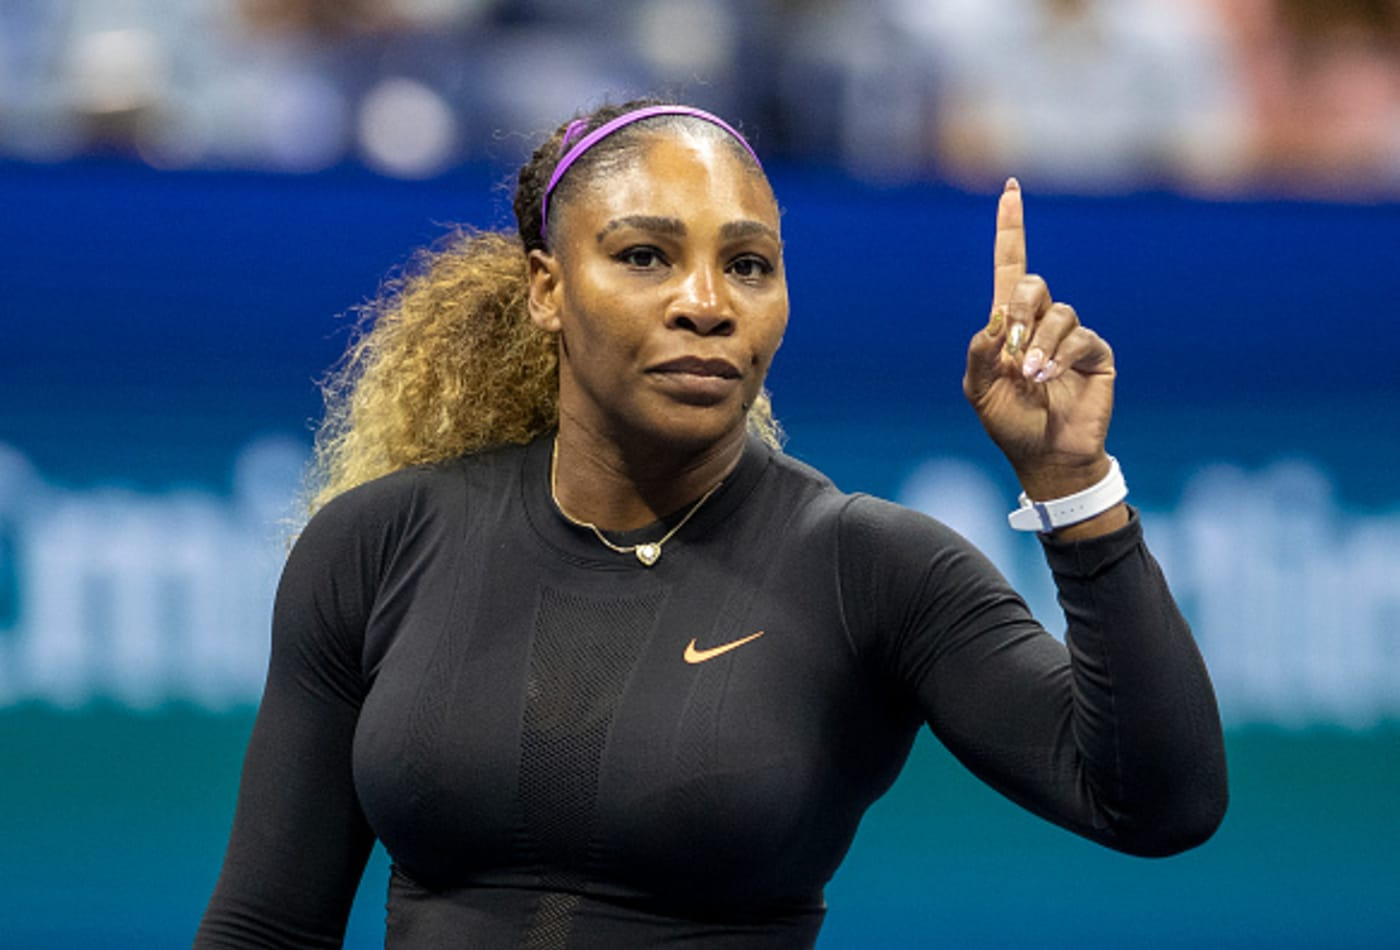 Serena Williams expressed a